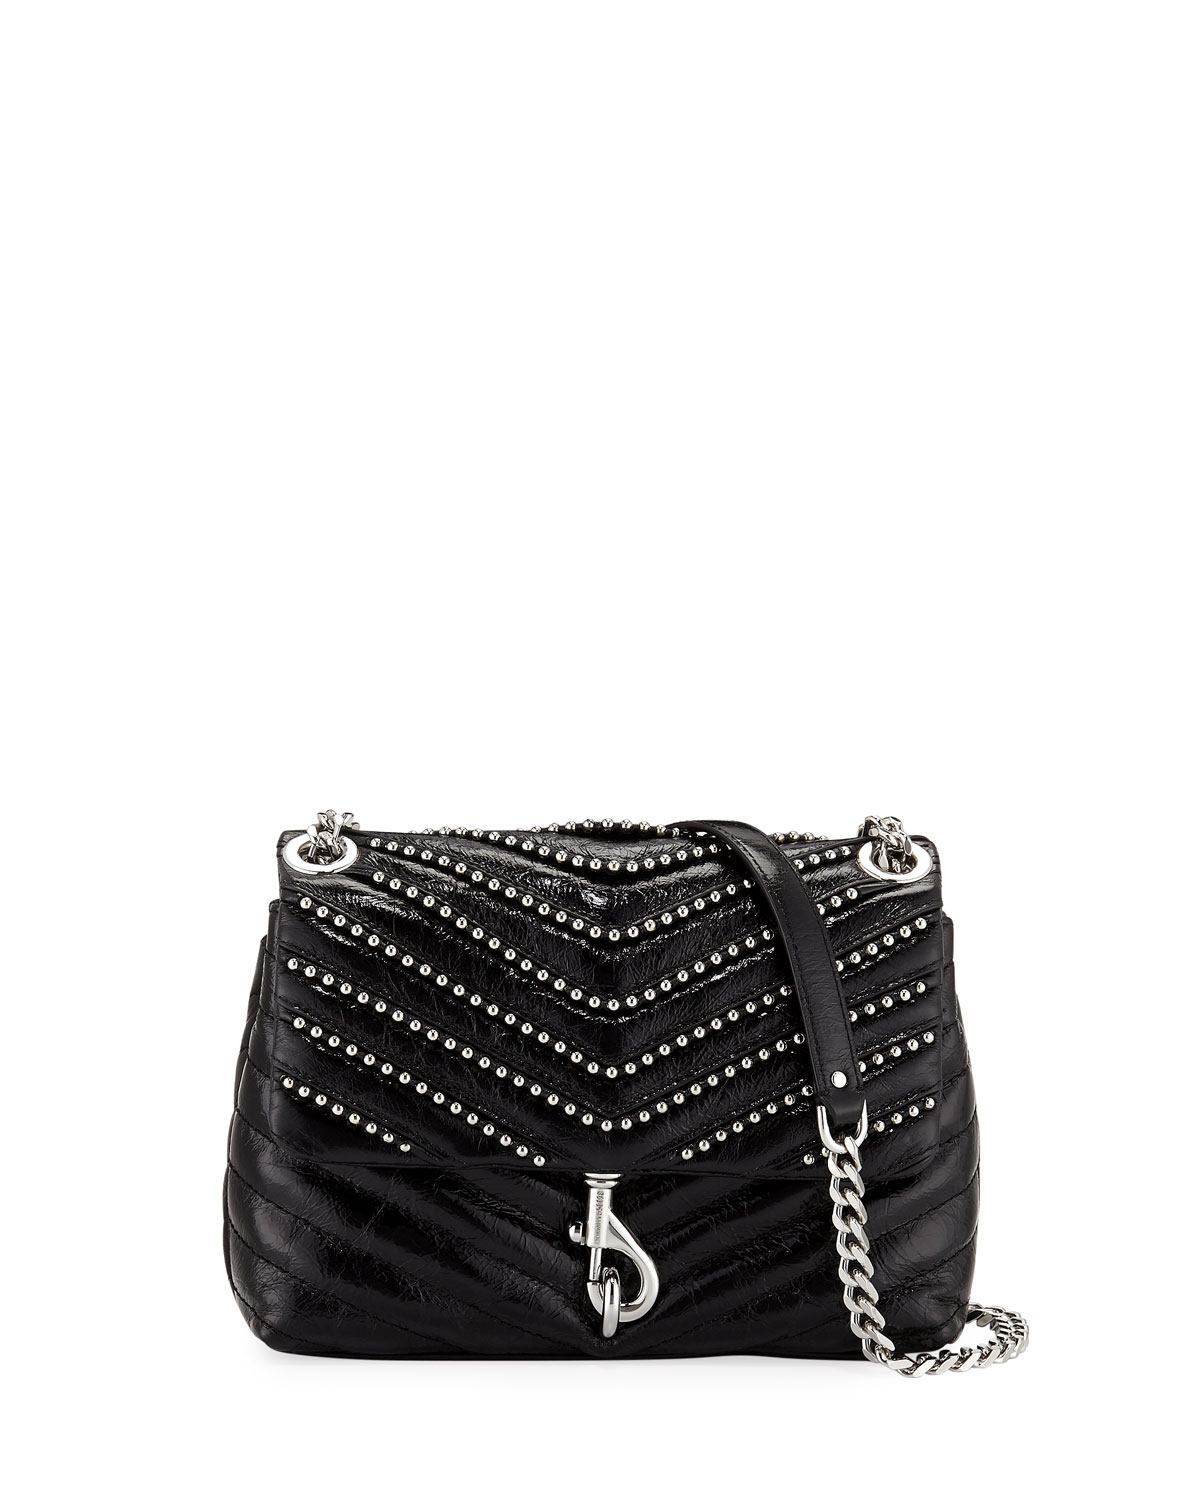 4bffe41c96d4 Rebecca Minkoff Edie Flap Studded Leather Crossbody Bag